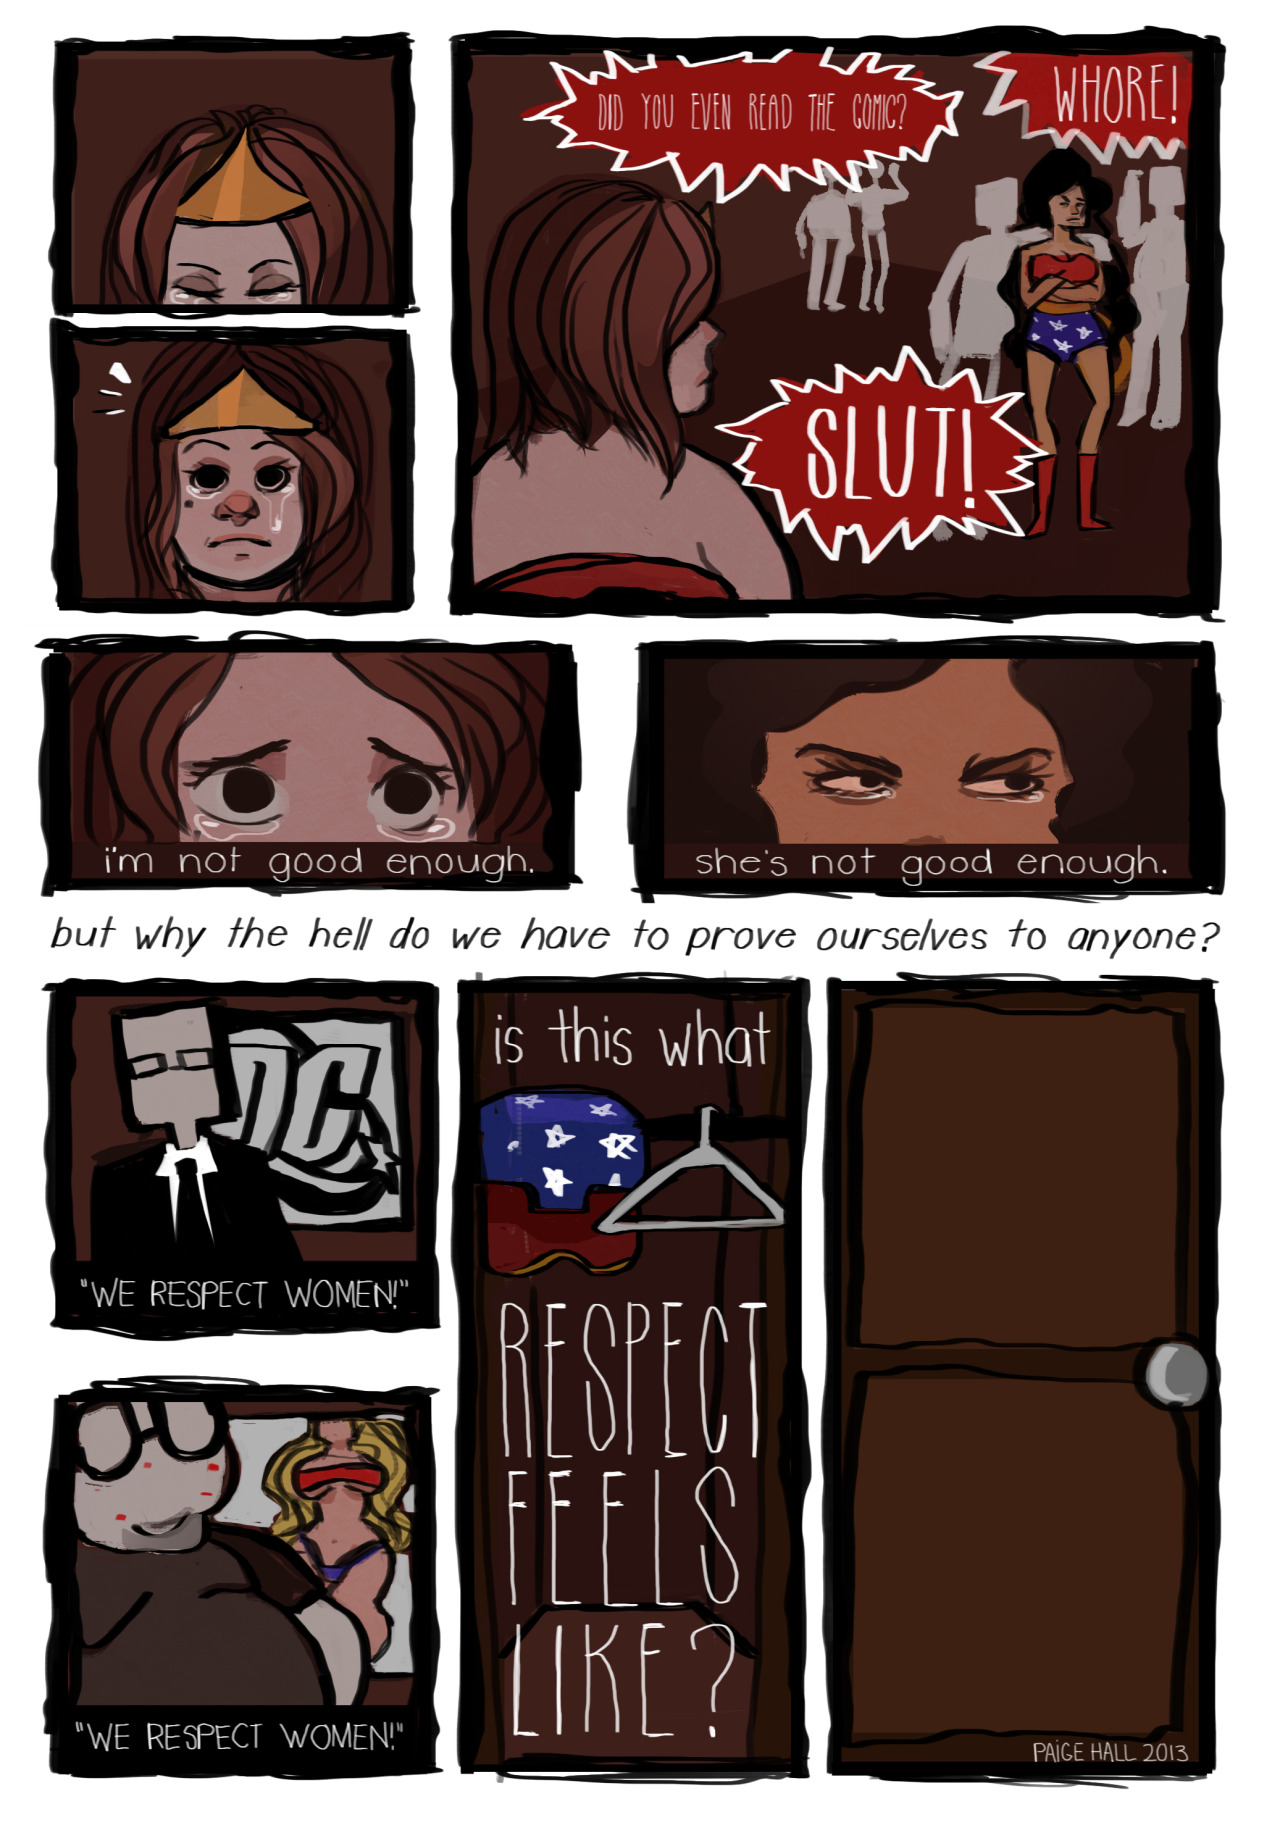 drquinzel:  thumbcramps:  hi guys! this is a comic i made for a final in my comics in literature class. we had to do a research paper on a topic we'd discussed in class and then accompany it with a comic with a relevant subject. my paper was about hyper-sexualization of women in comic books, but i decided to broaden it out here as well as personalize it and make myself the subject and discuss something i've been subjected to in the convention circuit and on the internet as well as thousands of other women, as well as give a cue to thought about how the comic book industry as well as the video game industry and even just media in general (all of which are male dominated) push such ridiculous pressures onto girls and women. also, it feels kind of silly to have to add this since i hope it's obvious, but i am very aware that there are men that don't subscribe to this attitude, and am incredibly grateful that these issues are brought to light to people other than the ones that are subjected to it.  anyway haha i have literally been staring at this for 9 hours i don't even know which direction is up anymore. thanks for reading!!!  SO MUCH THIS. It reminds me of one time when I a couple of men in a line with me at a con thought it was a complement to me to tell me how good my Harley was, 'so much better and suit her more than that fat one we've seen about'. There was a larger Harley around which I had seen before at the con and had been in awe of, she was so beautiful, flawless and made a wonderful Harley. These group of men though just because she was bigger, she wasn't a good Harley and thought it was okay to make fun of her and that it was a complement to me to comment on her negatively to try and say mine was good. It is the worst kind of insult you can give me, you will never give me positivity and confidence by bringing someone else down.